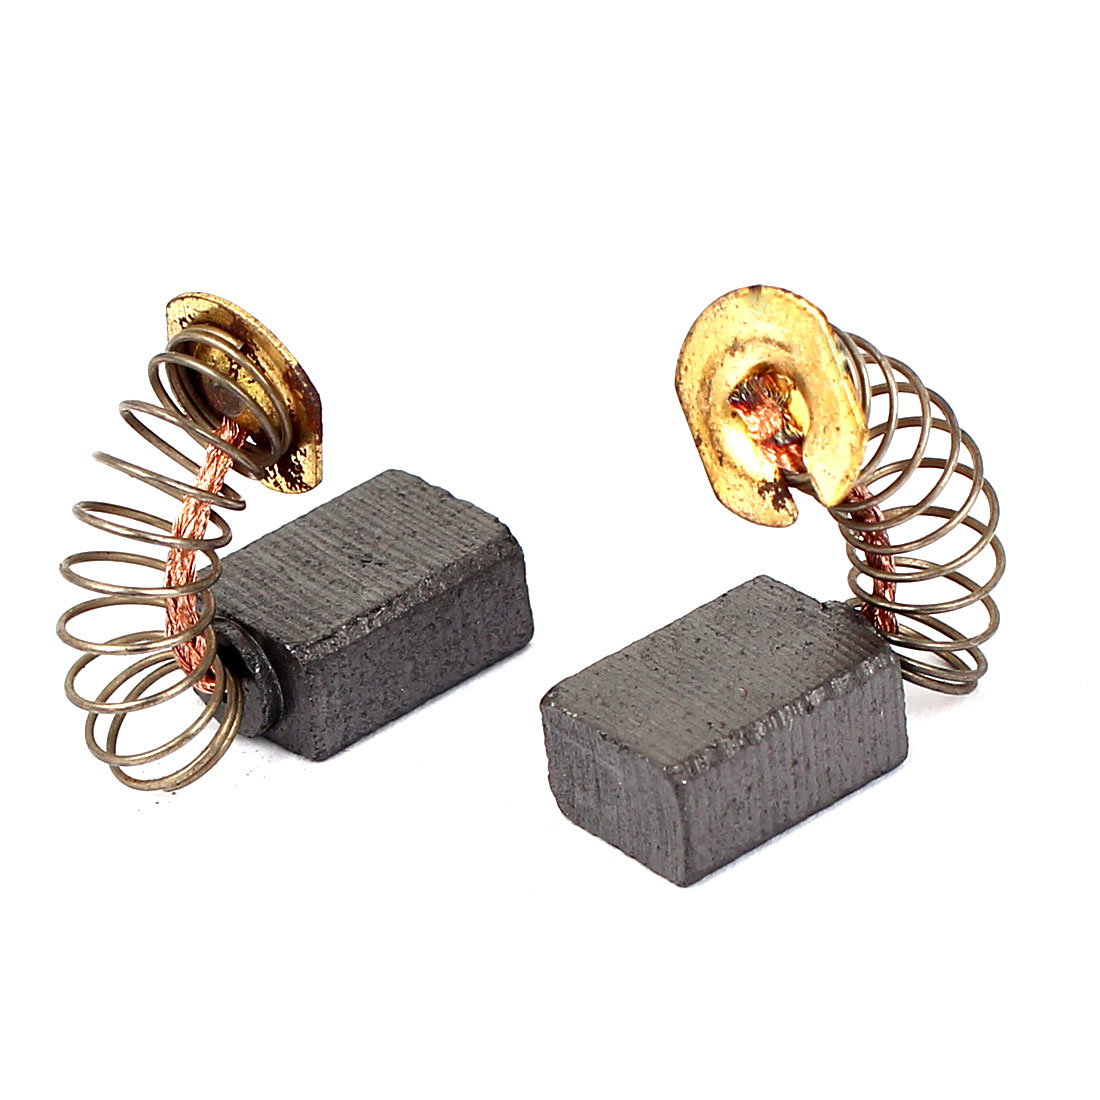 2 Pcs Replacement Motor Carbon Brushes 12mm x 9mm x 6mm for Electric Motors